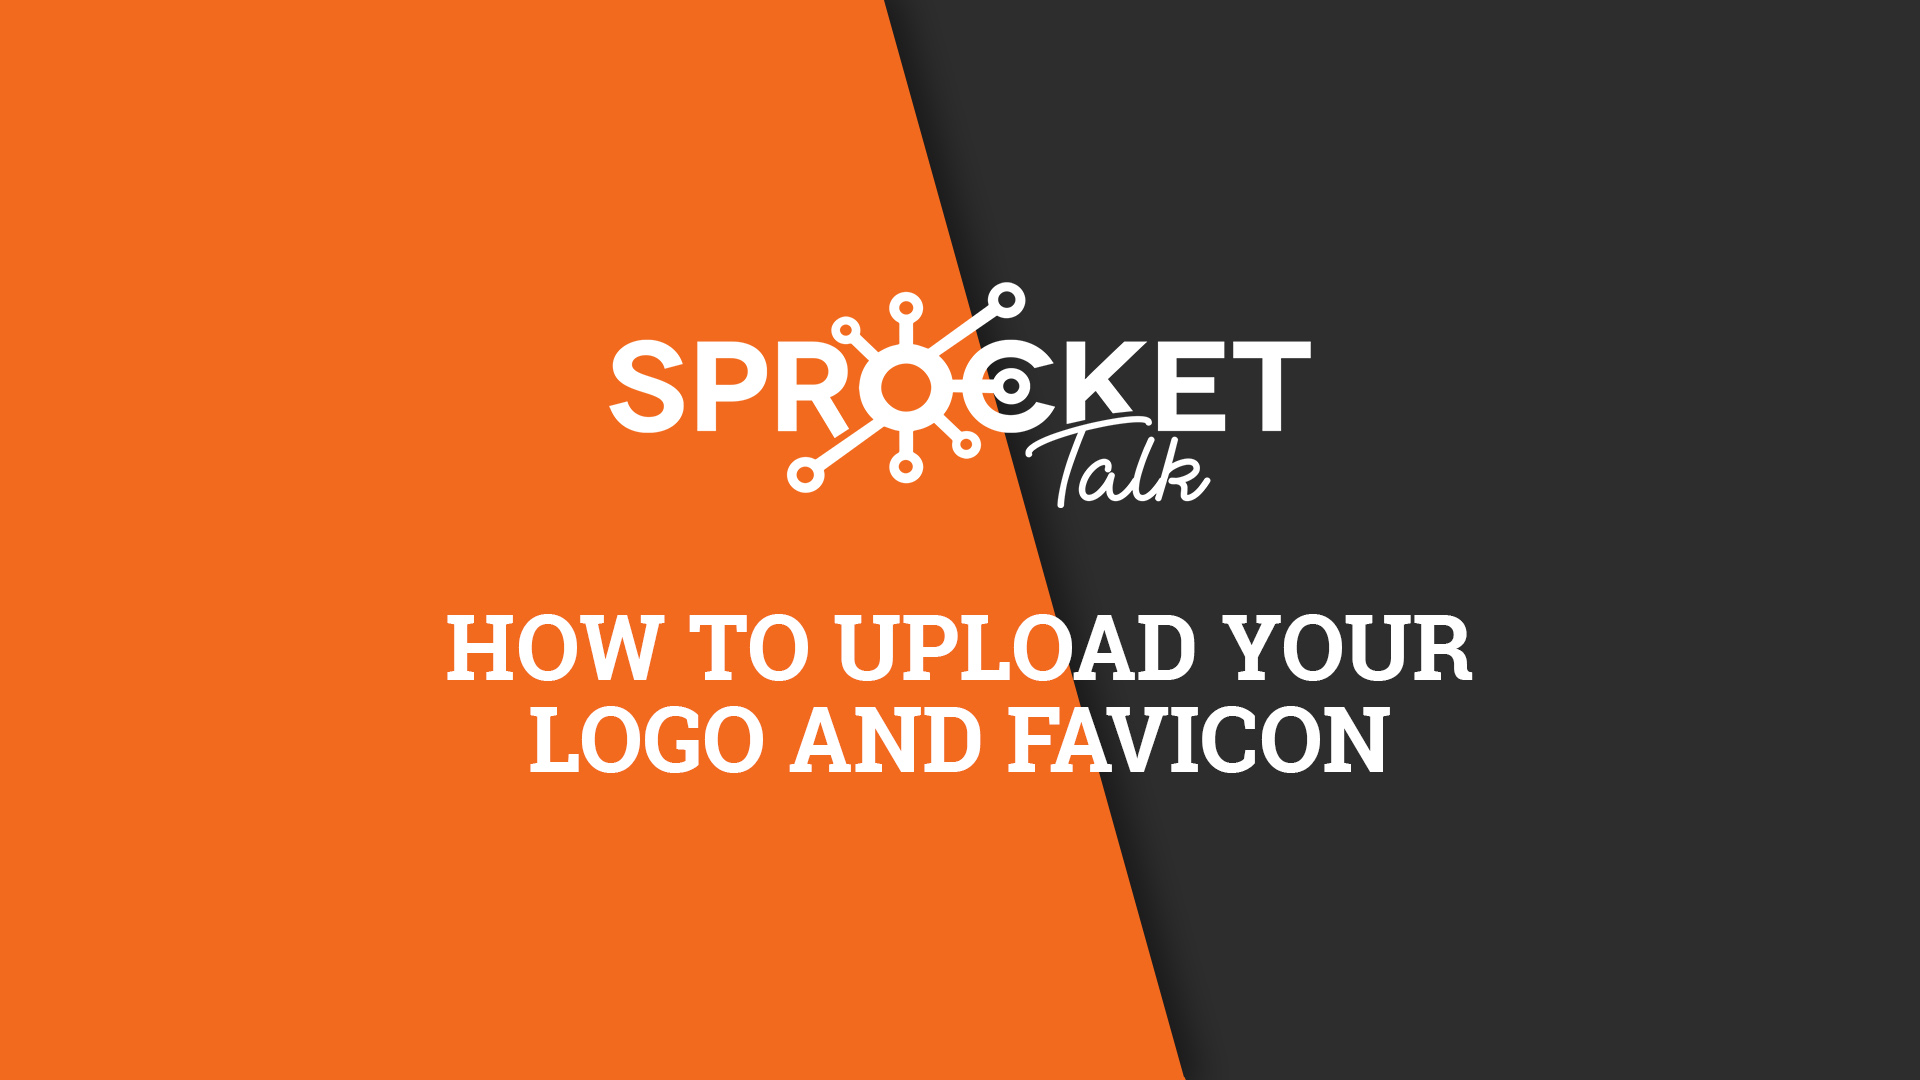 How to Upload Your Logo and Favicon